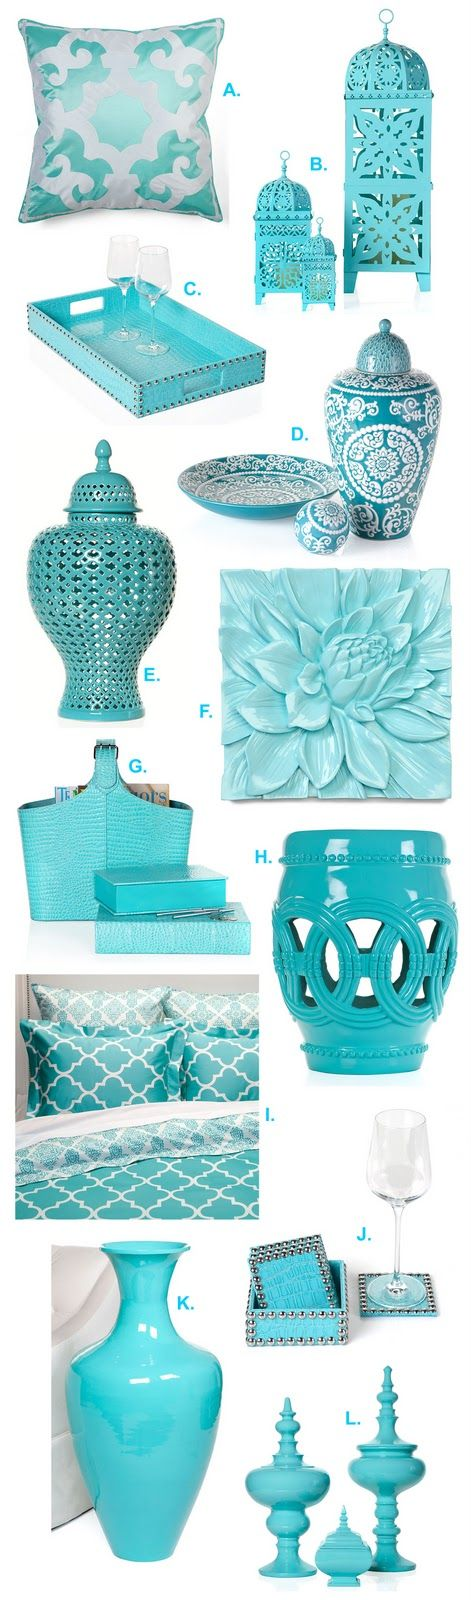 Living Room Turquoise Bedroom Teal Accessories Furniture